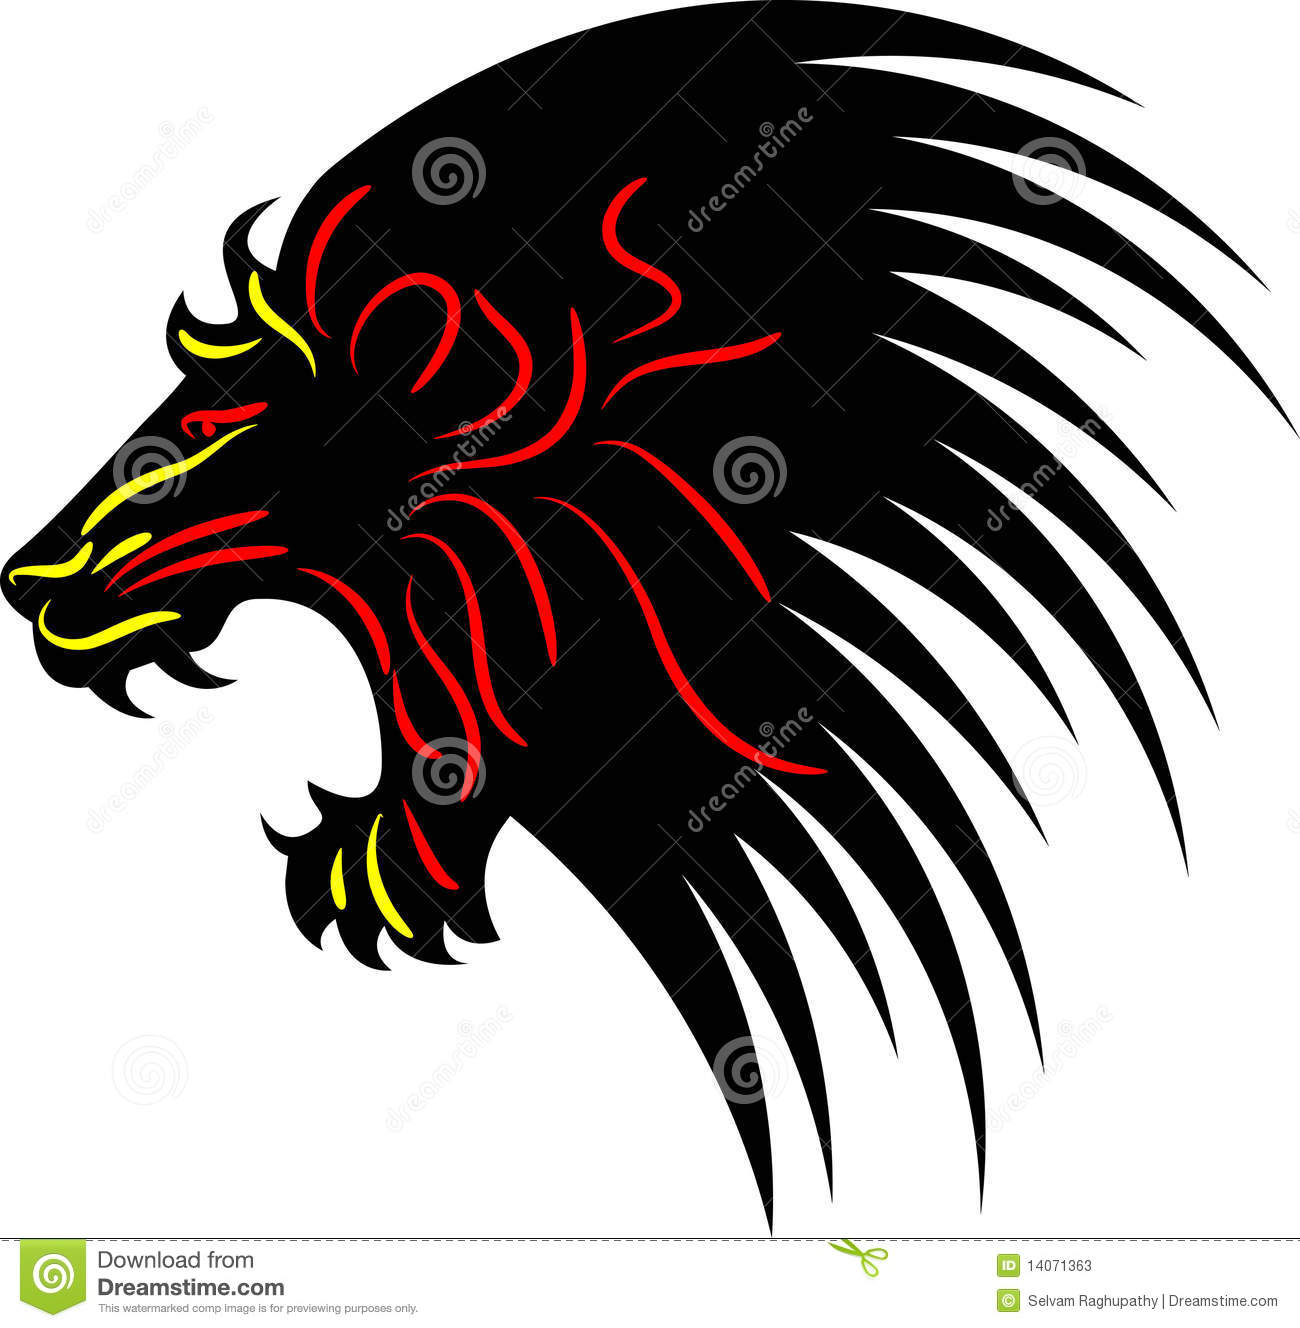 Gallery For gt Lions Head Logo